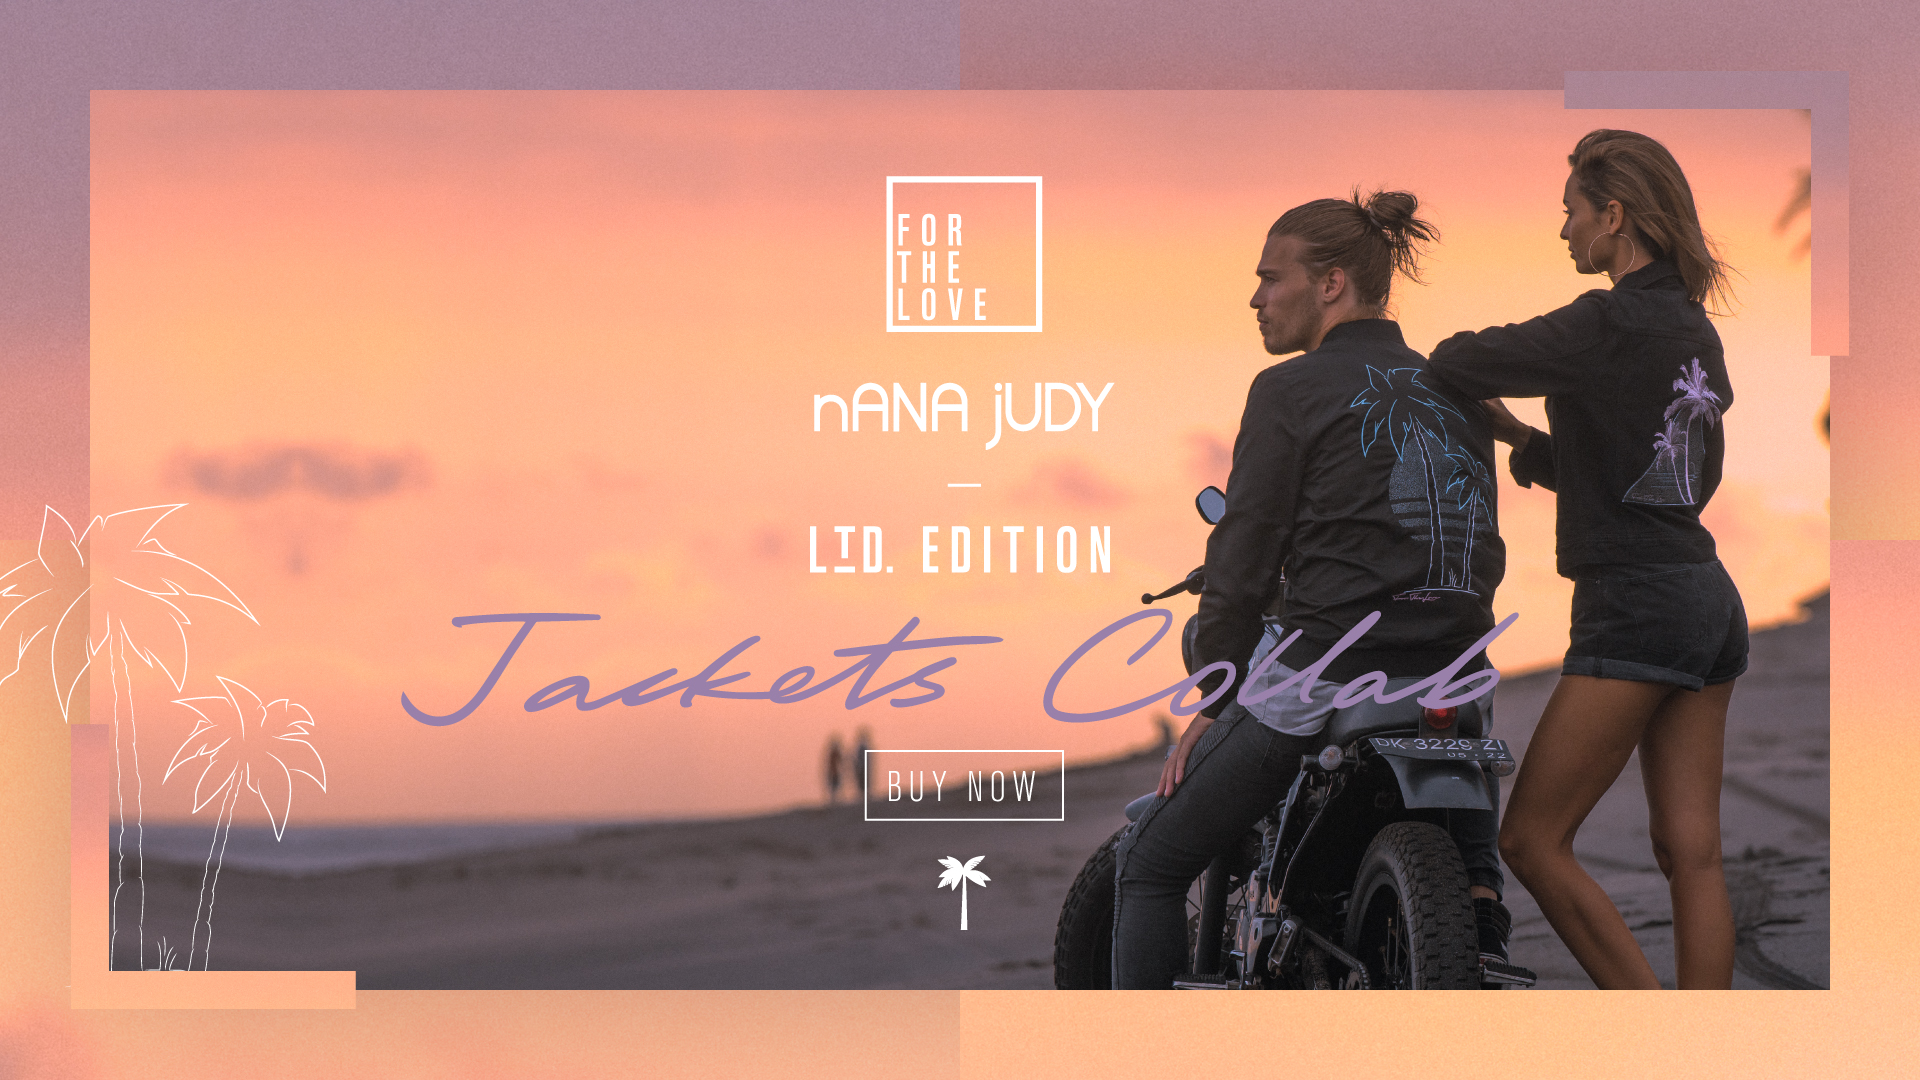 18_FTL_NJ-Jacket-Campaign_Landscape-Buy Now.jpg